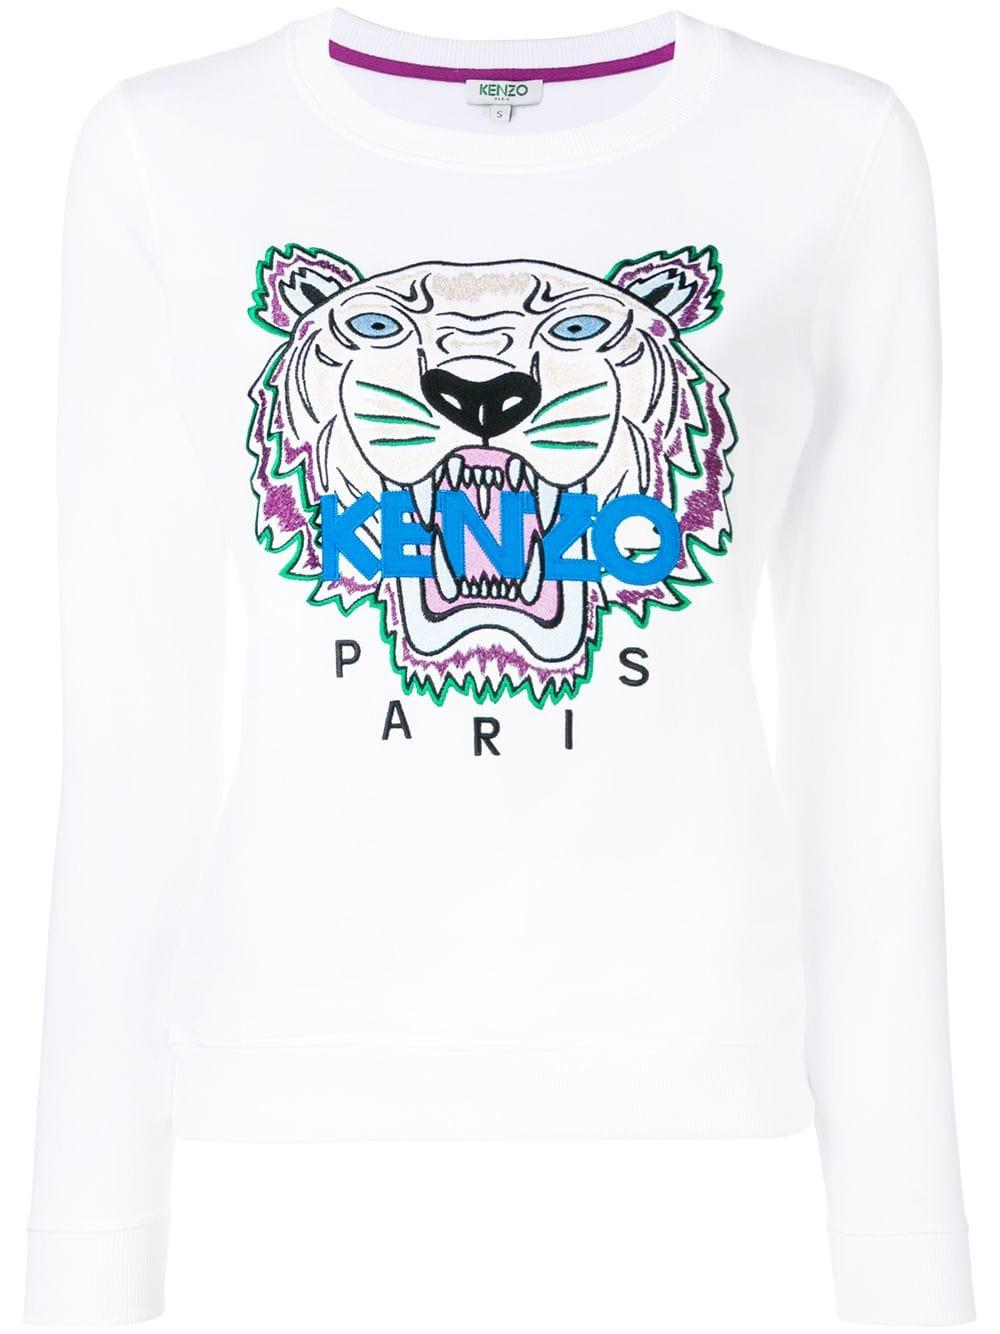 446e2054 KENZO - White Tiger Cotton Sweatshirt - Lyst. View fullscreen